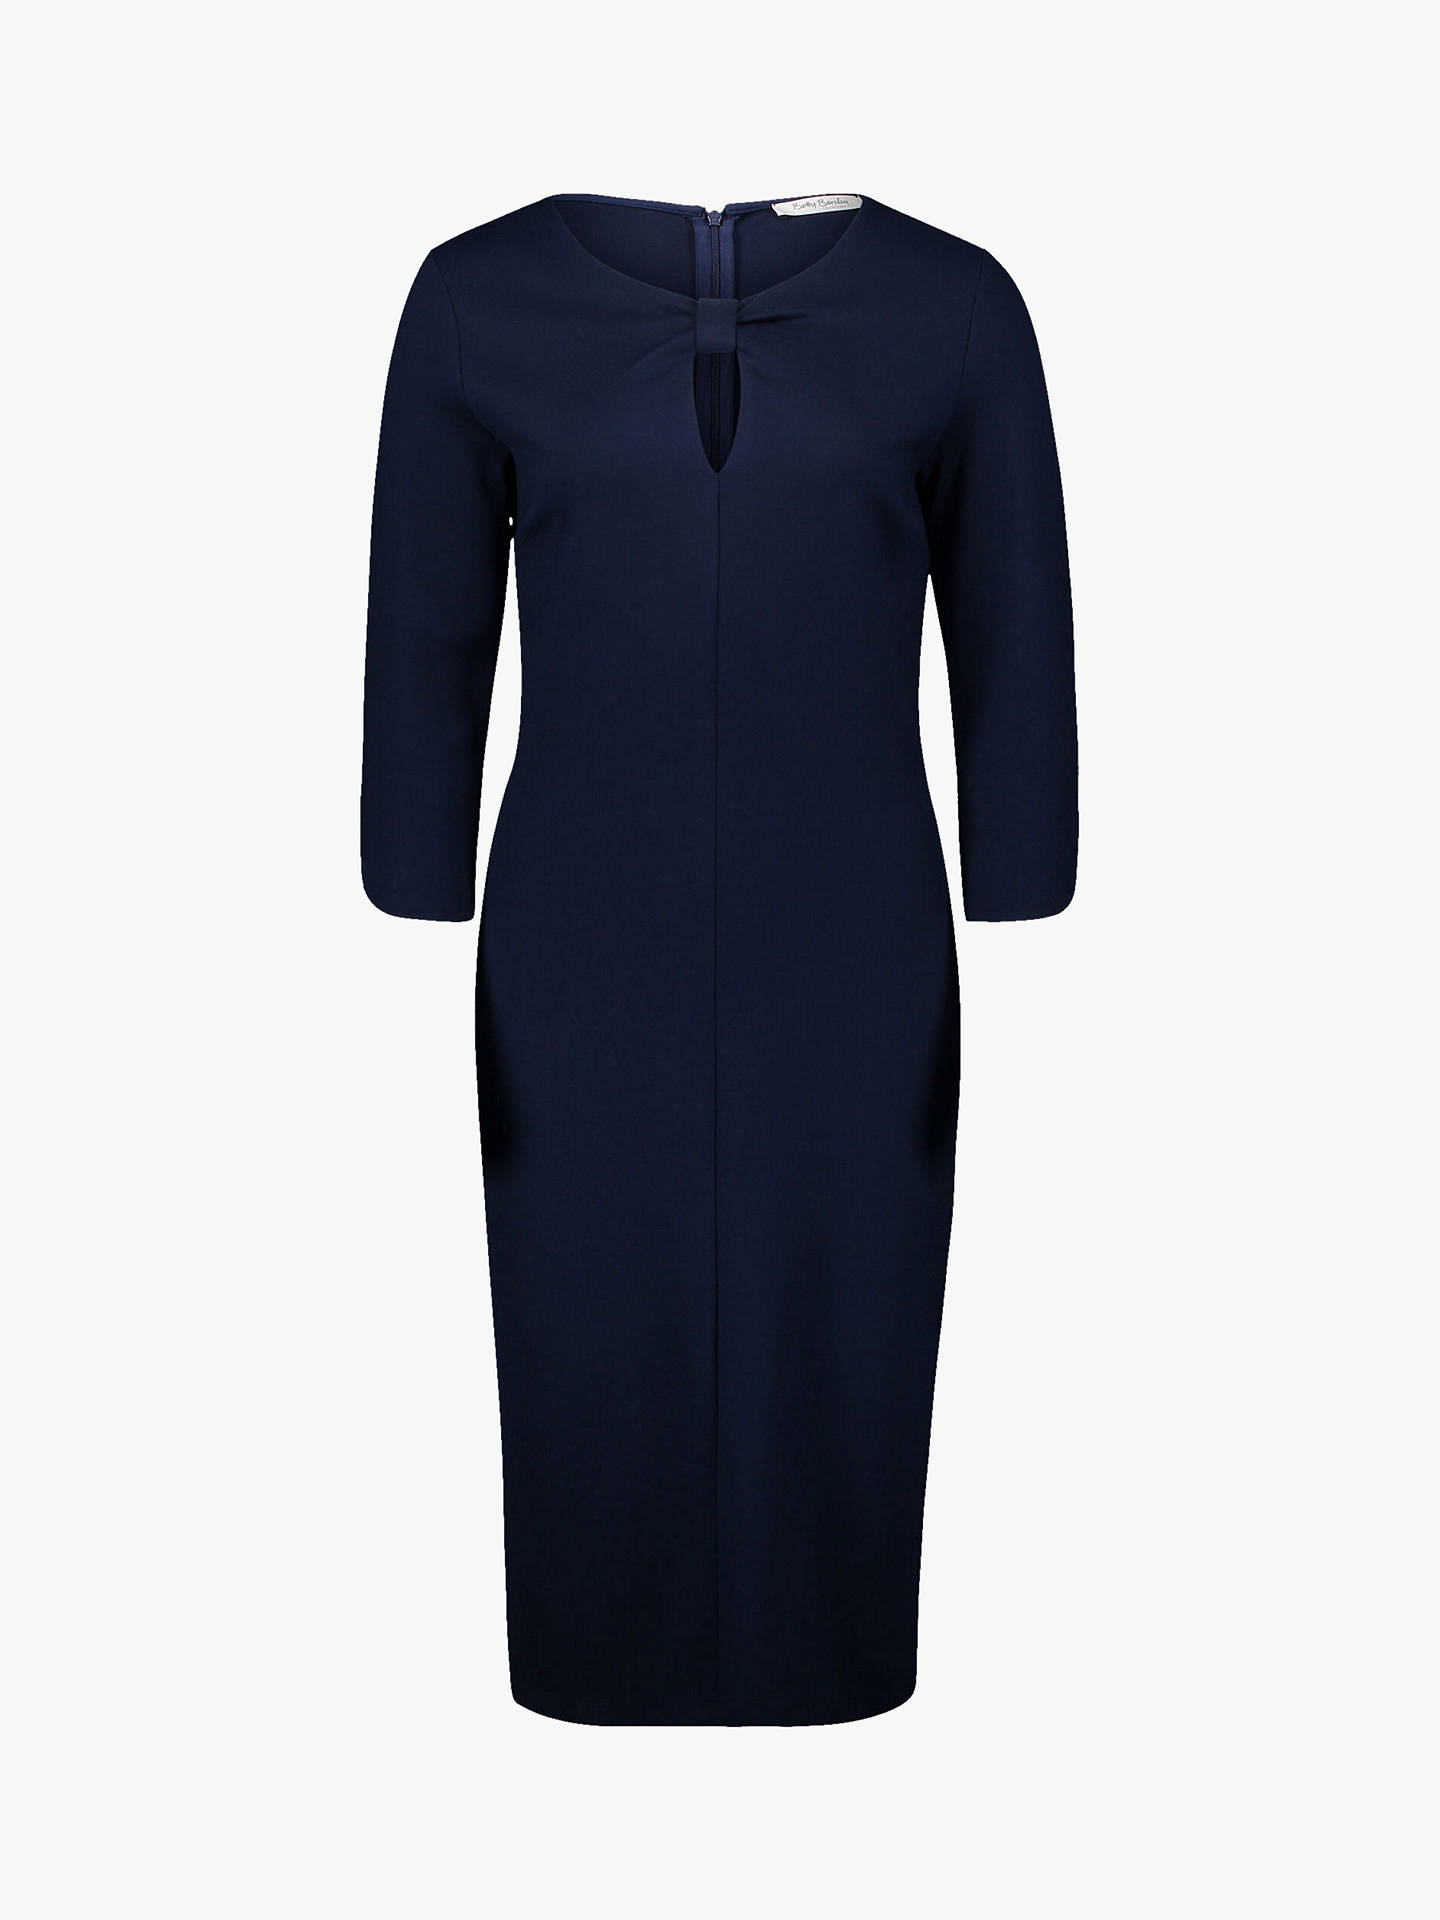 Buy Betty Barclay Keyhole Jersey Dress, Peacoat Blue, 10 Online at johnlewis.com